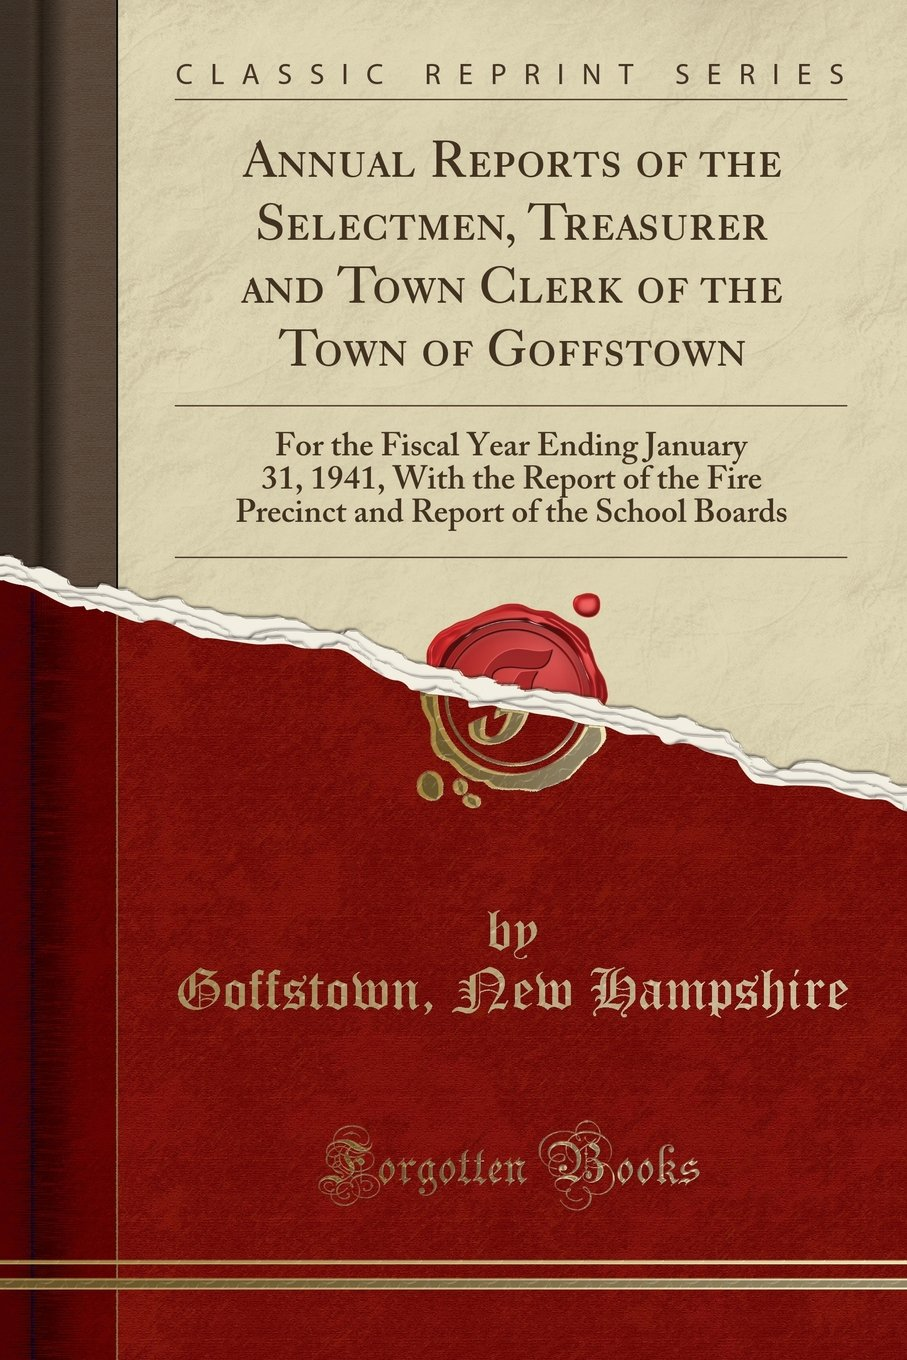 Read Online Annual Reports of the Selectmen, Treasurer and Town Clerk of the Town of Goffstown: For the Fiscal Year Ending January 31, 1941, With the Report of ... Report of the School Boards (Classic Reprint) ebook